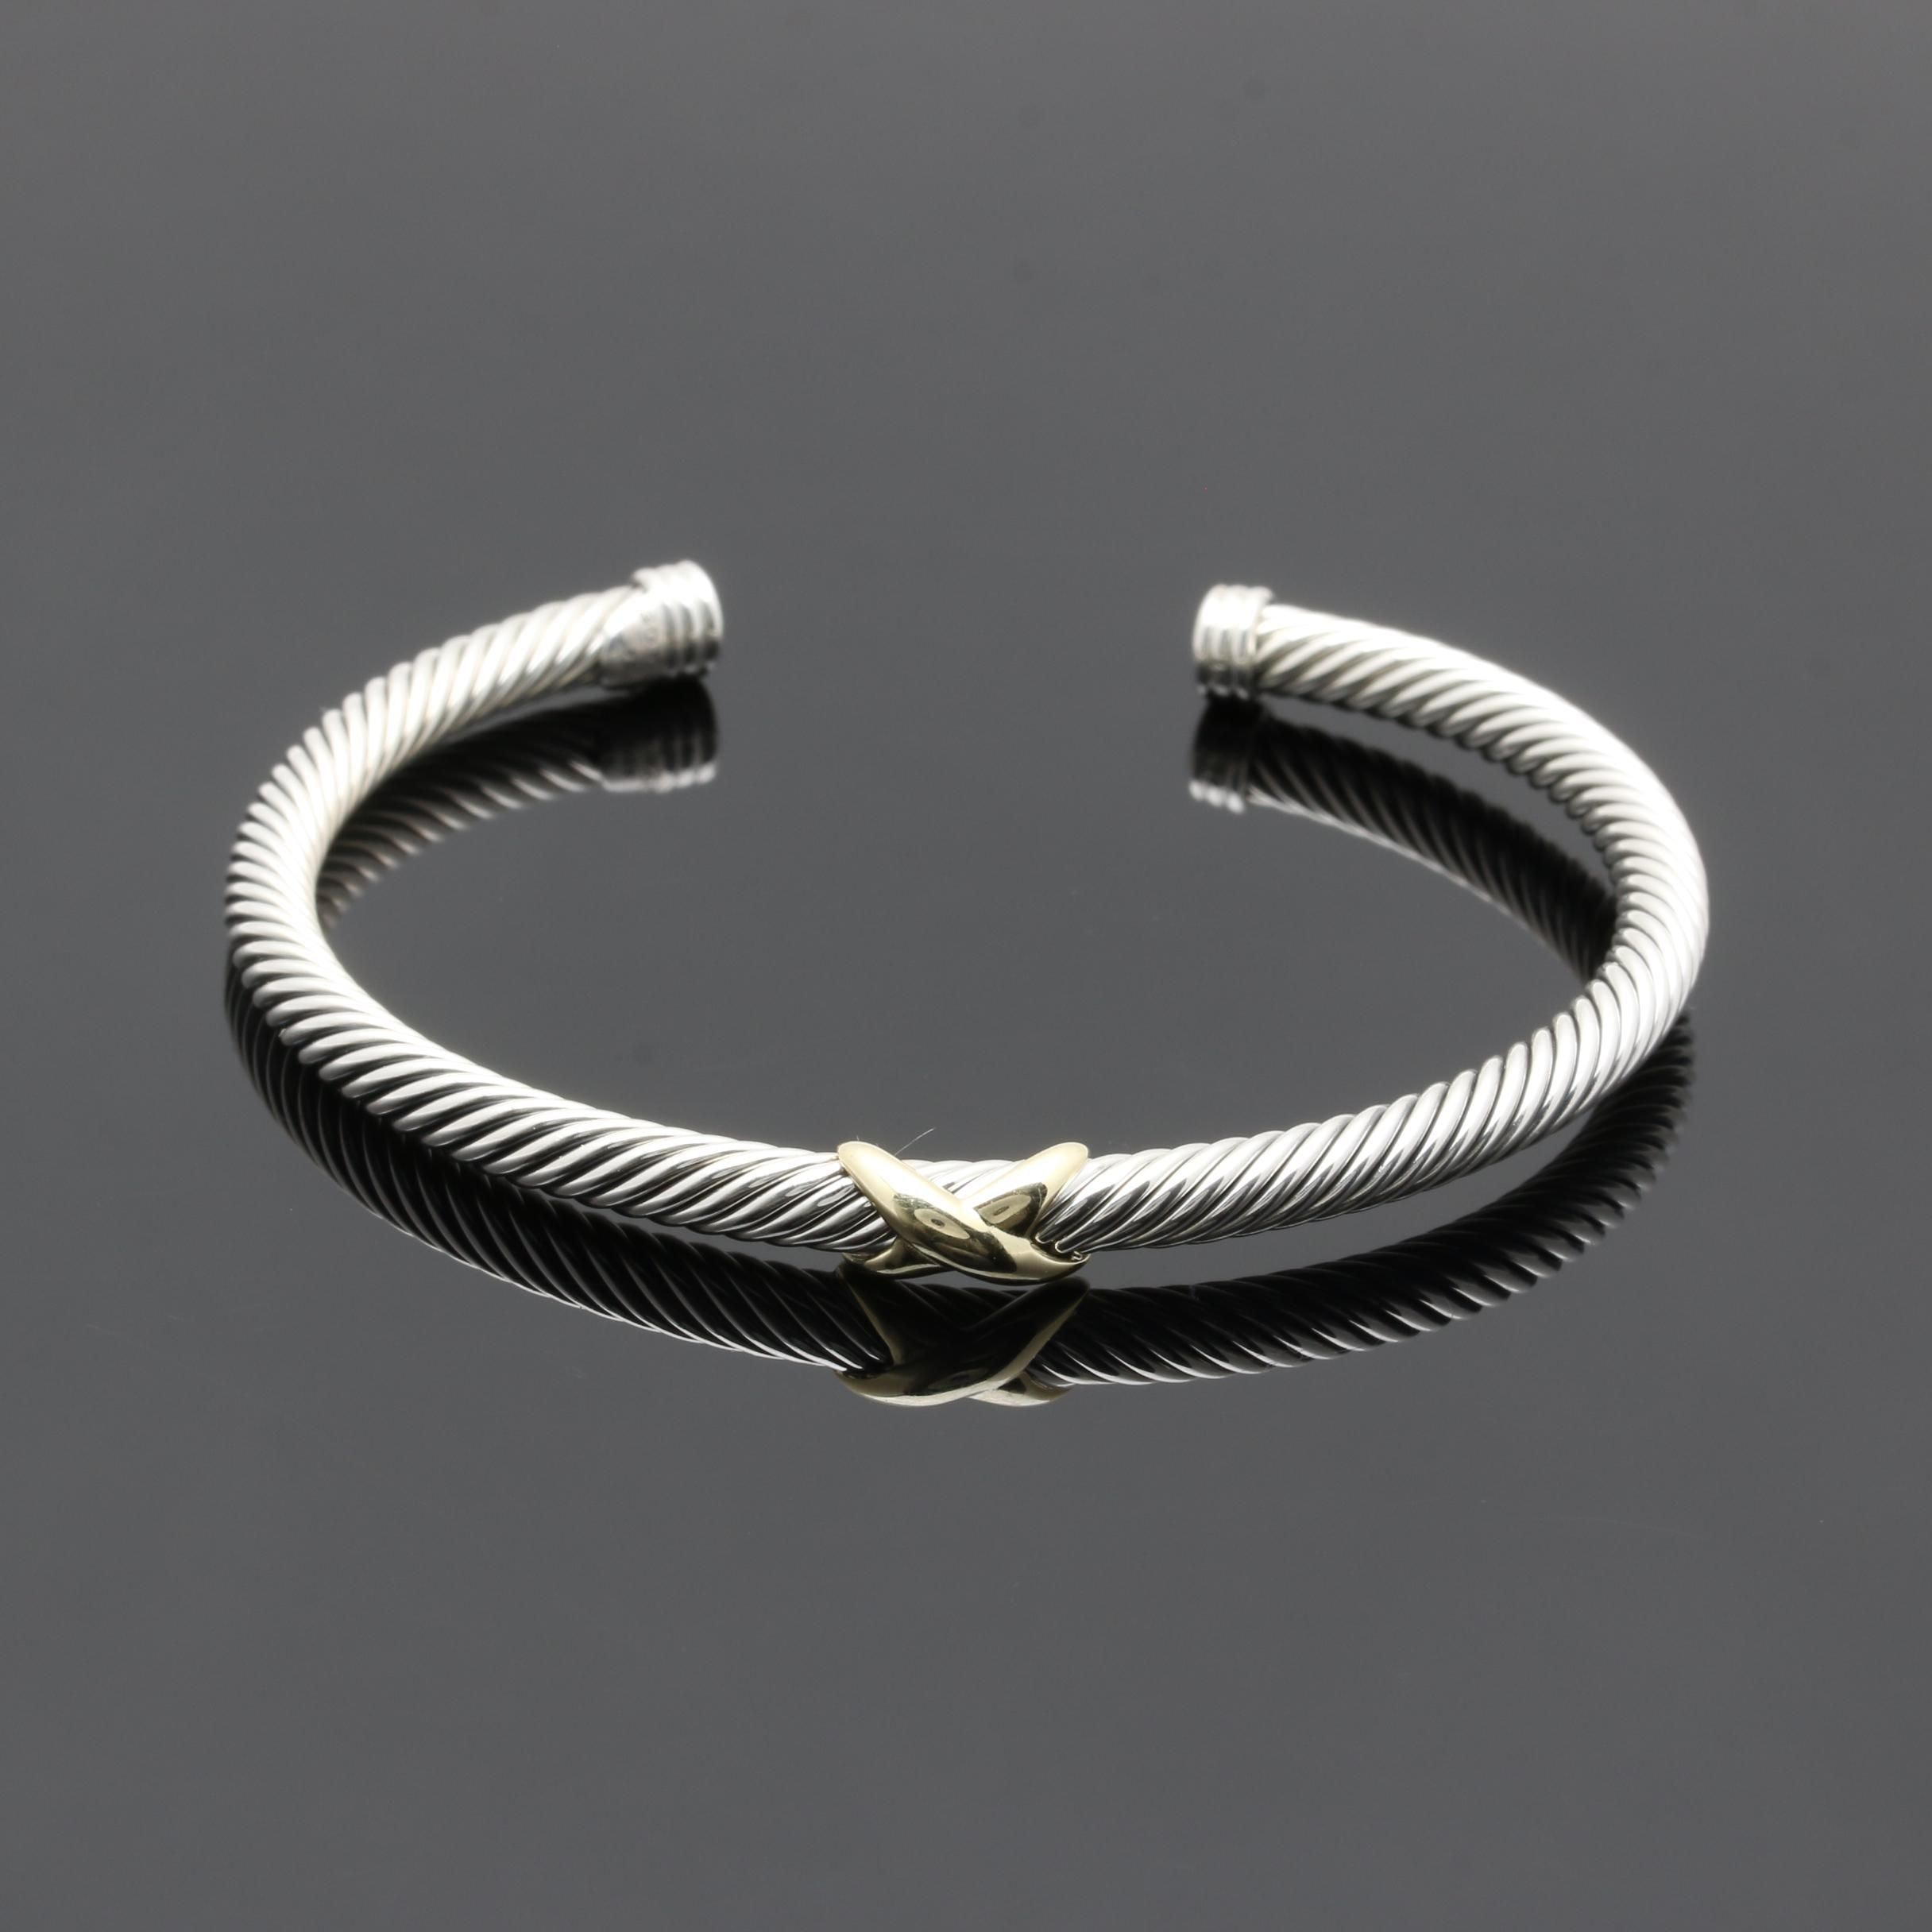 David Yurman Sterling Silver Twisted Cuff Bracelet with 18K Yellow Gold Accents